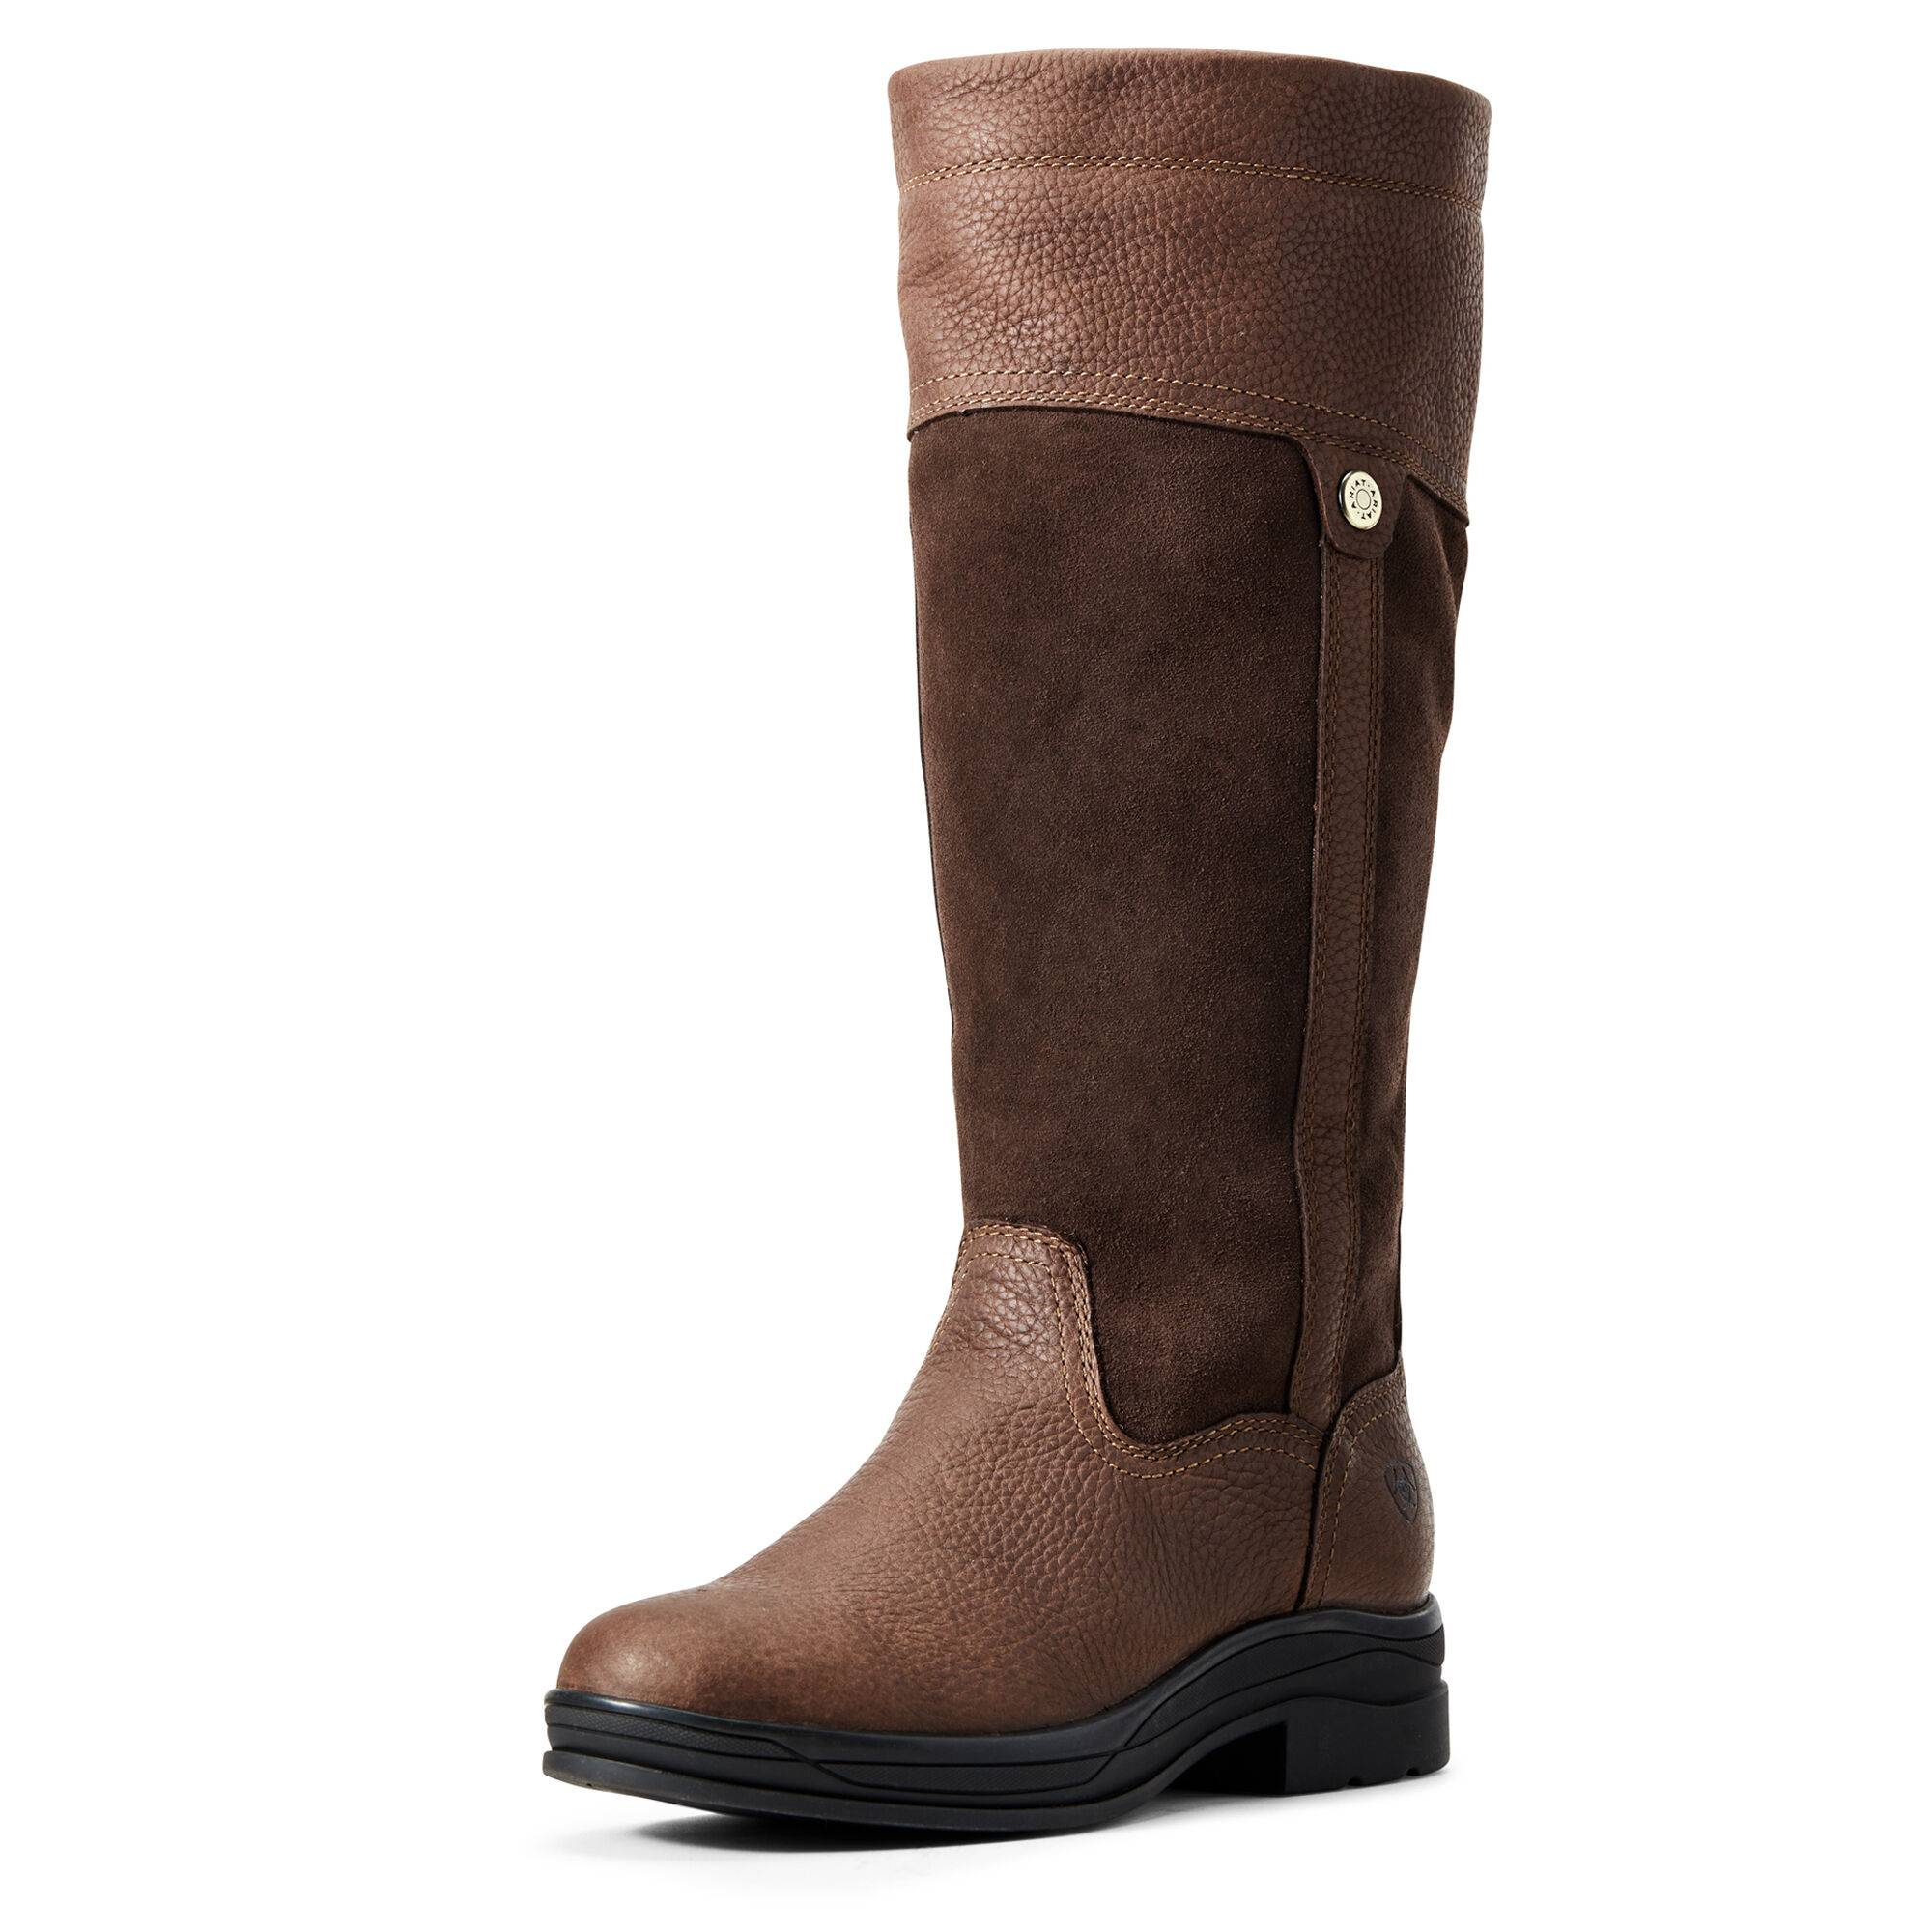 Ariat Women's Windermere II Waterproof Boots in Brown Leather, Size 5.5 by Ariat